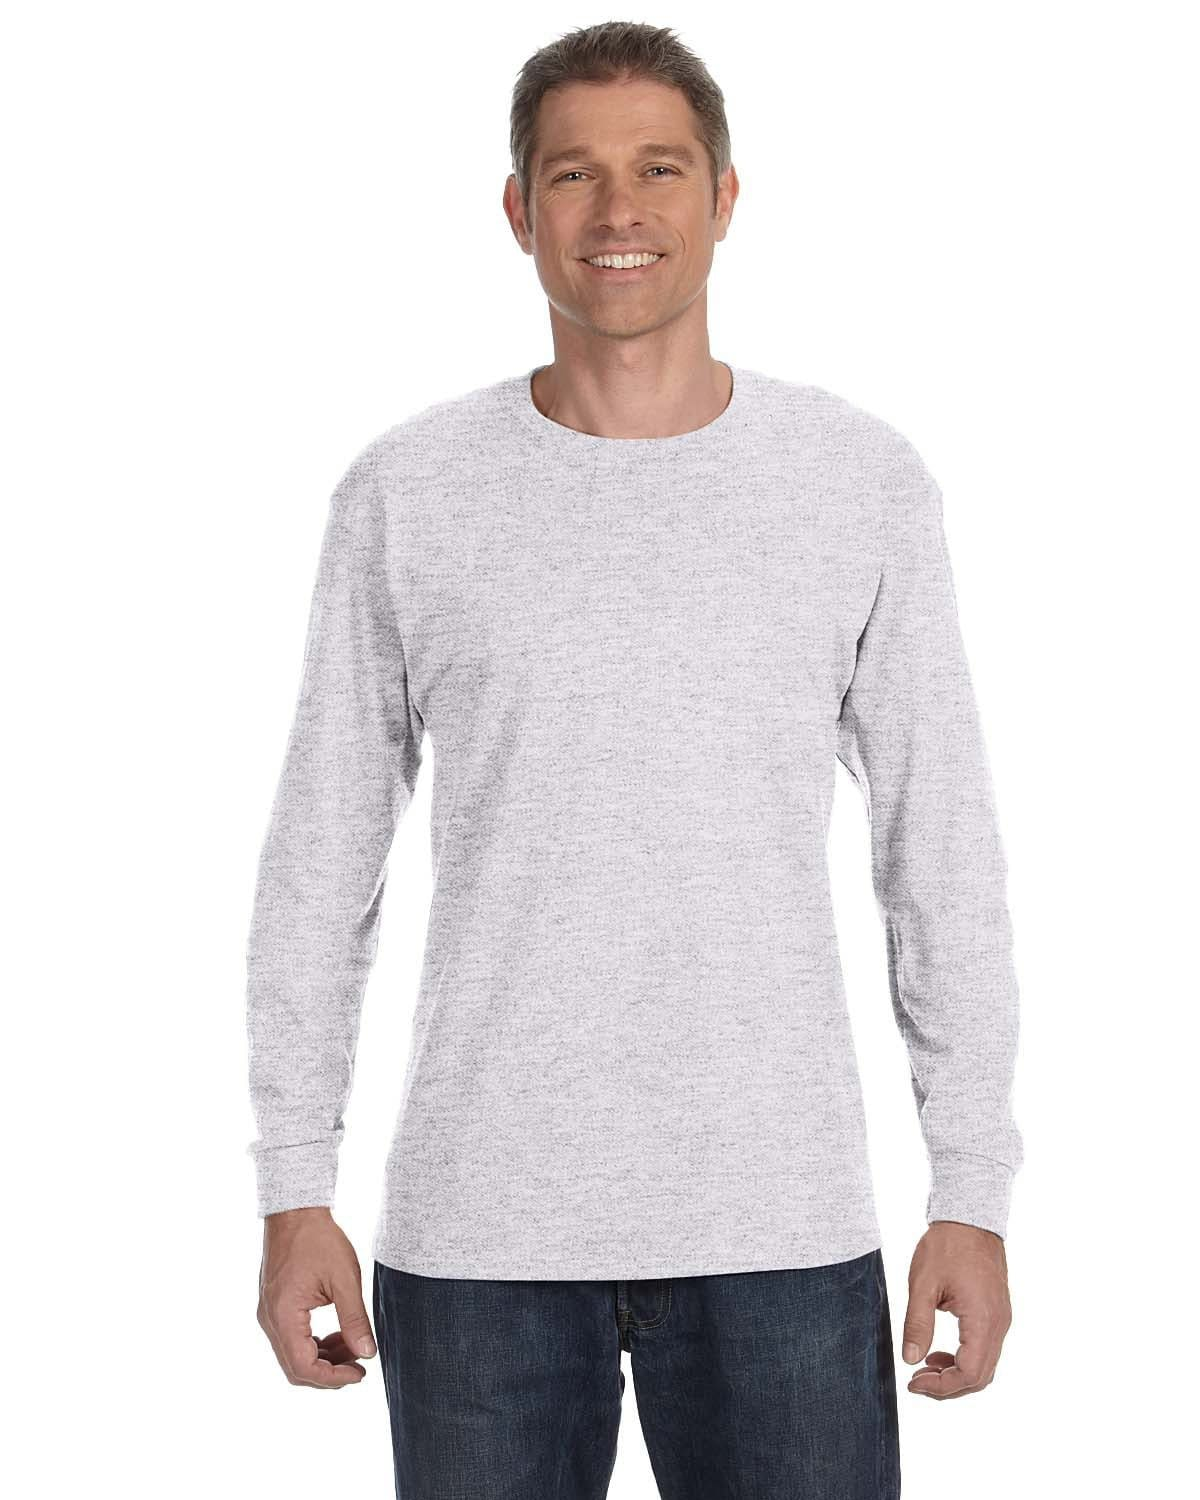 g540-adult-heavy-cotton-5-3-oz-long-sleeve-t-shirt-small-large-Large-ASH GREY-Oasispromos